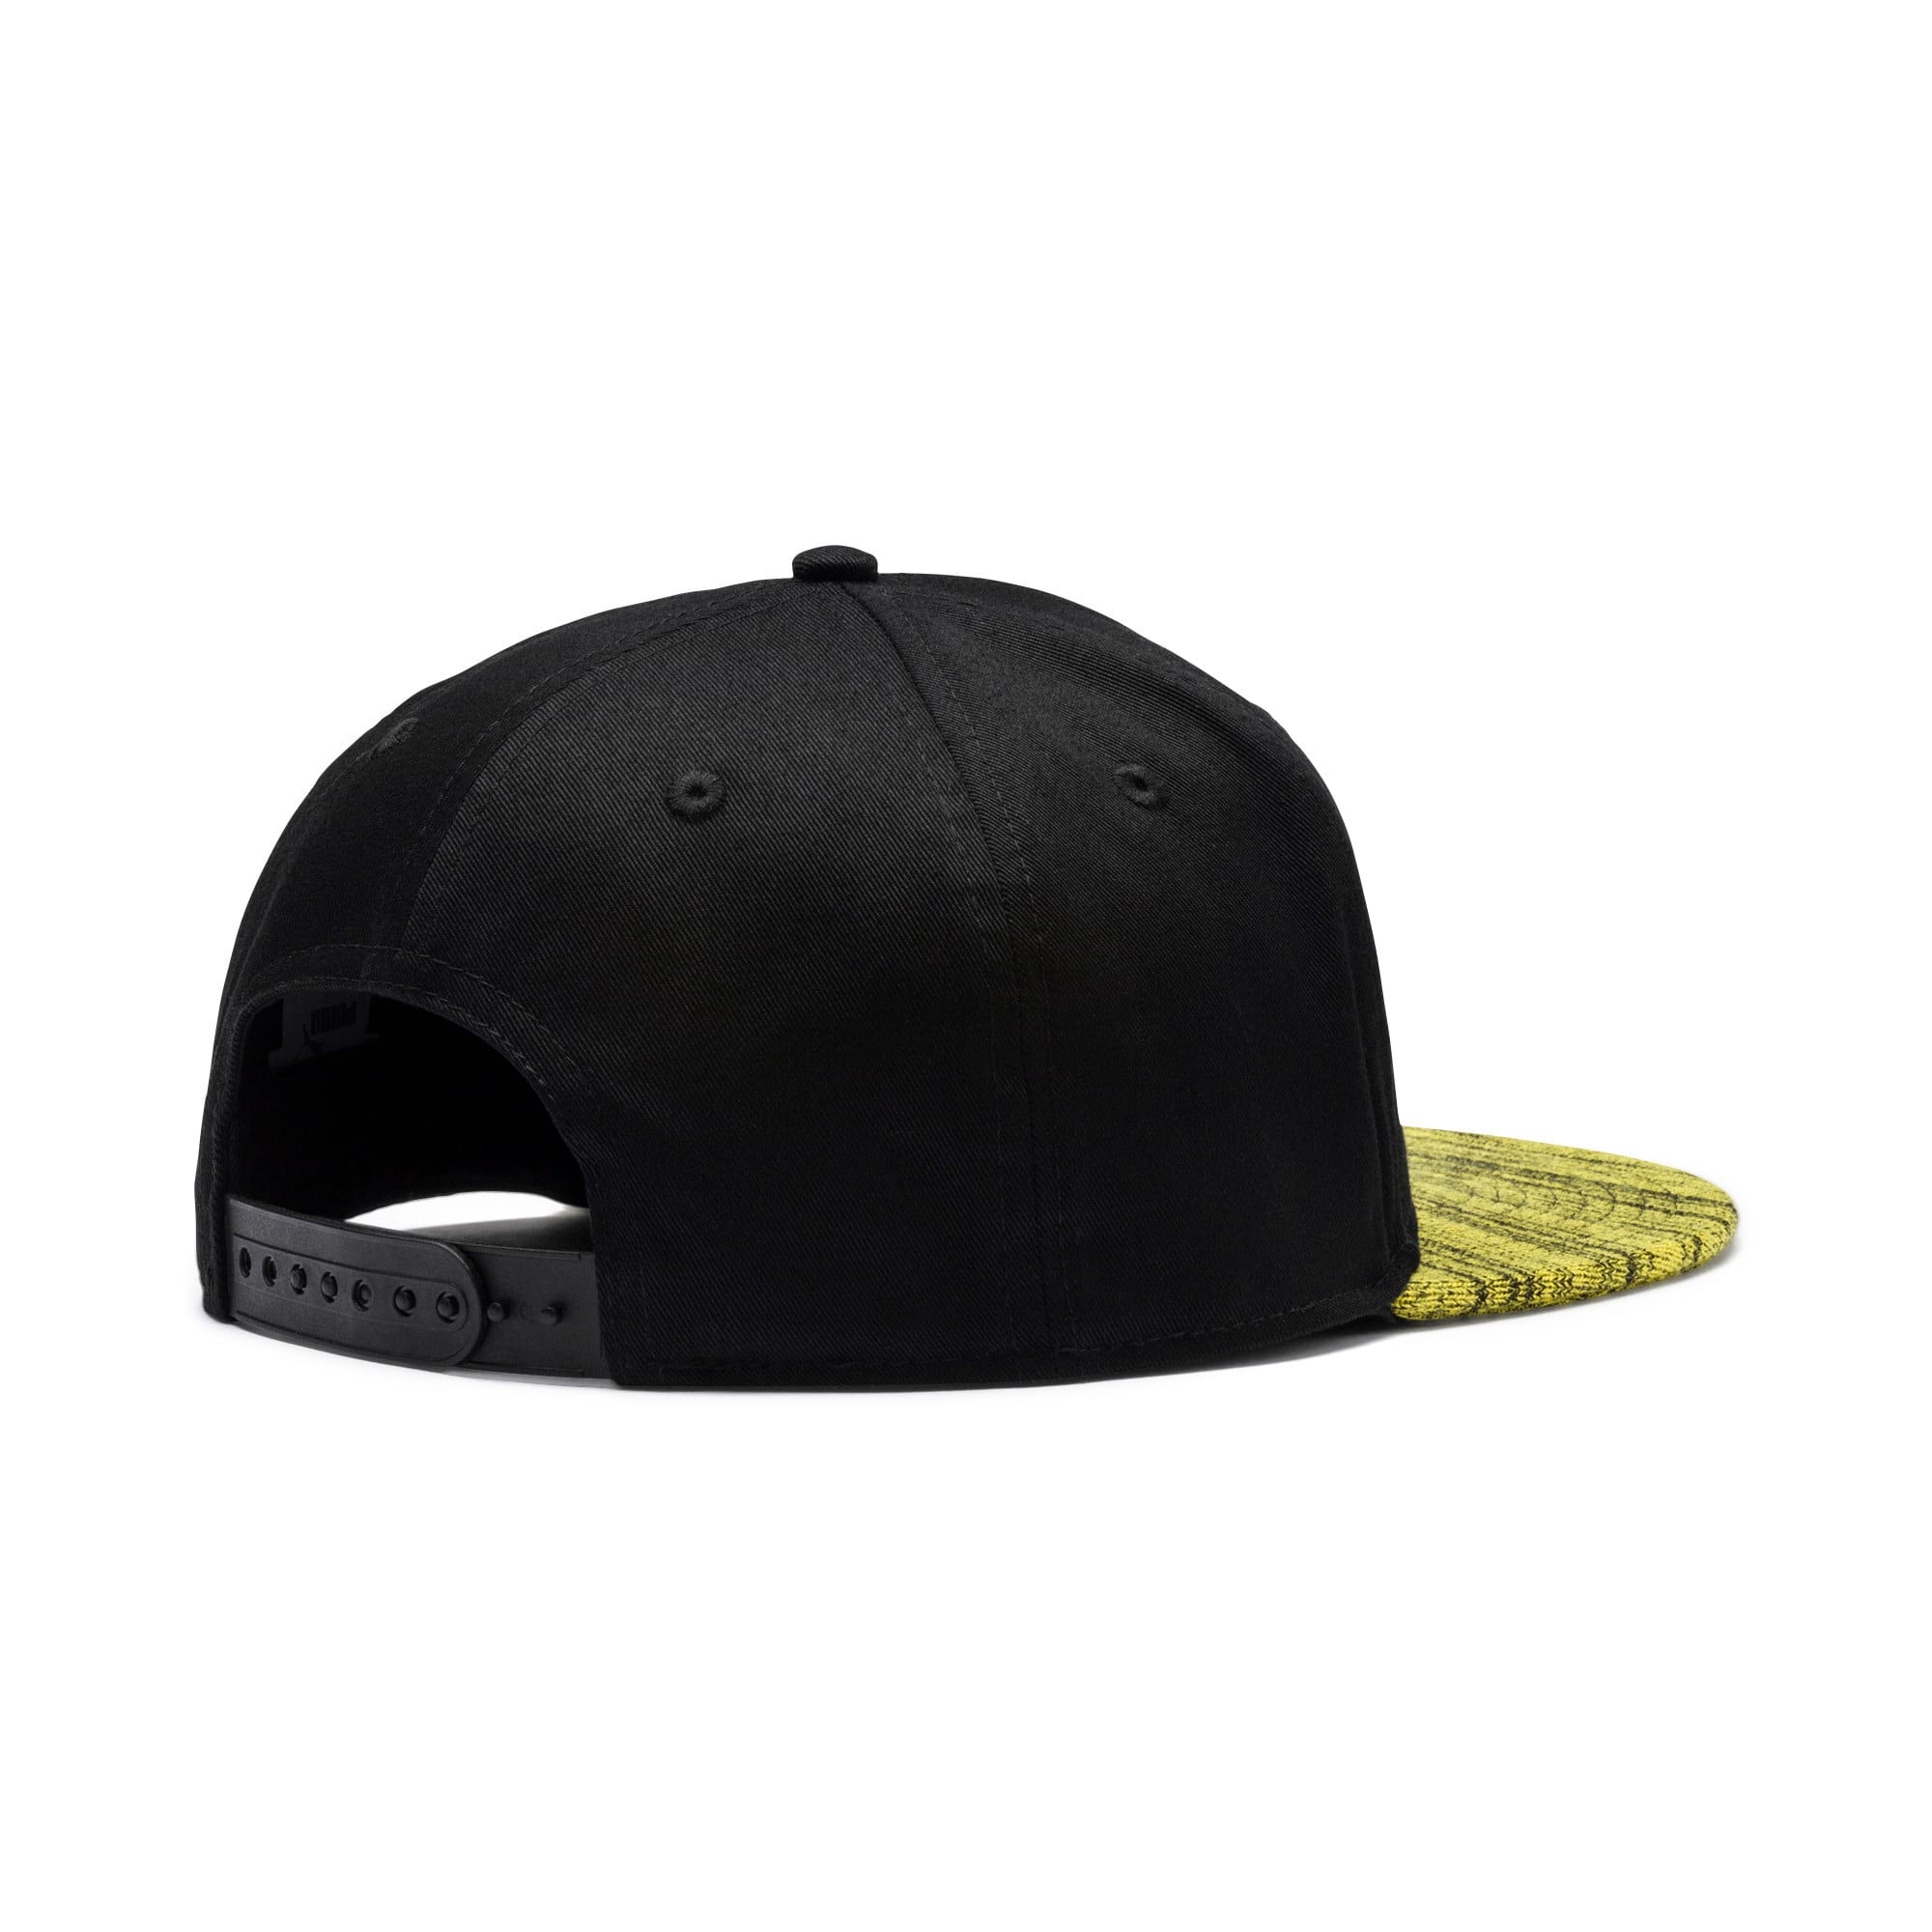 Thumbnail 2 of BVB Flatbrim Hat, Puma Black, medium